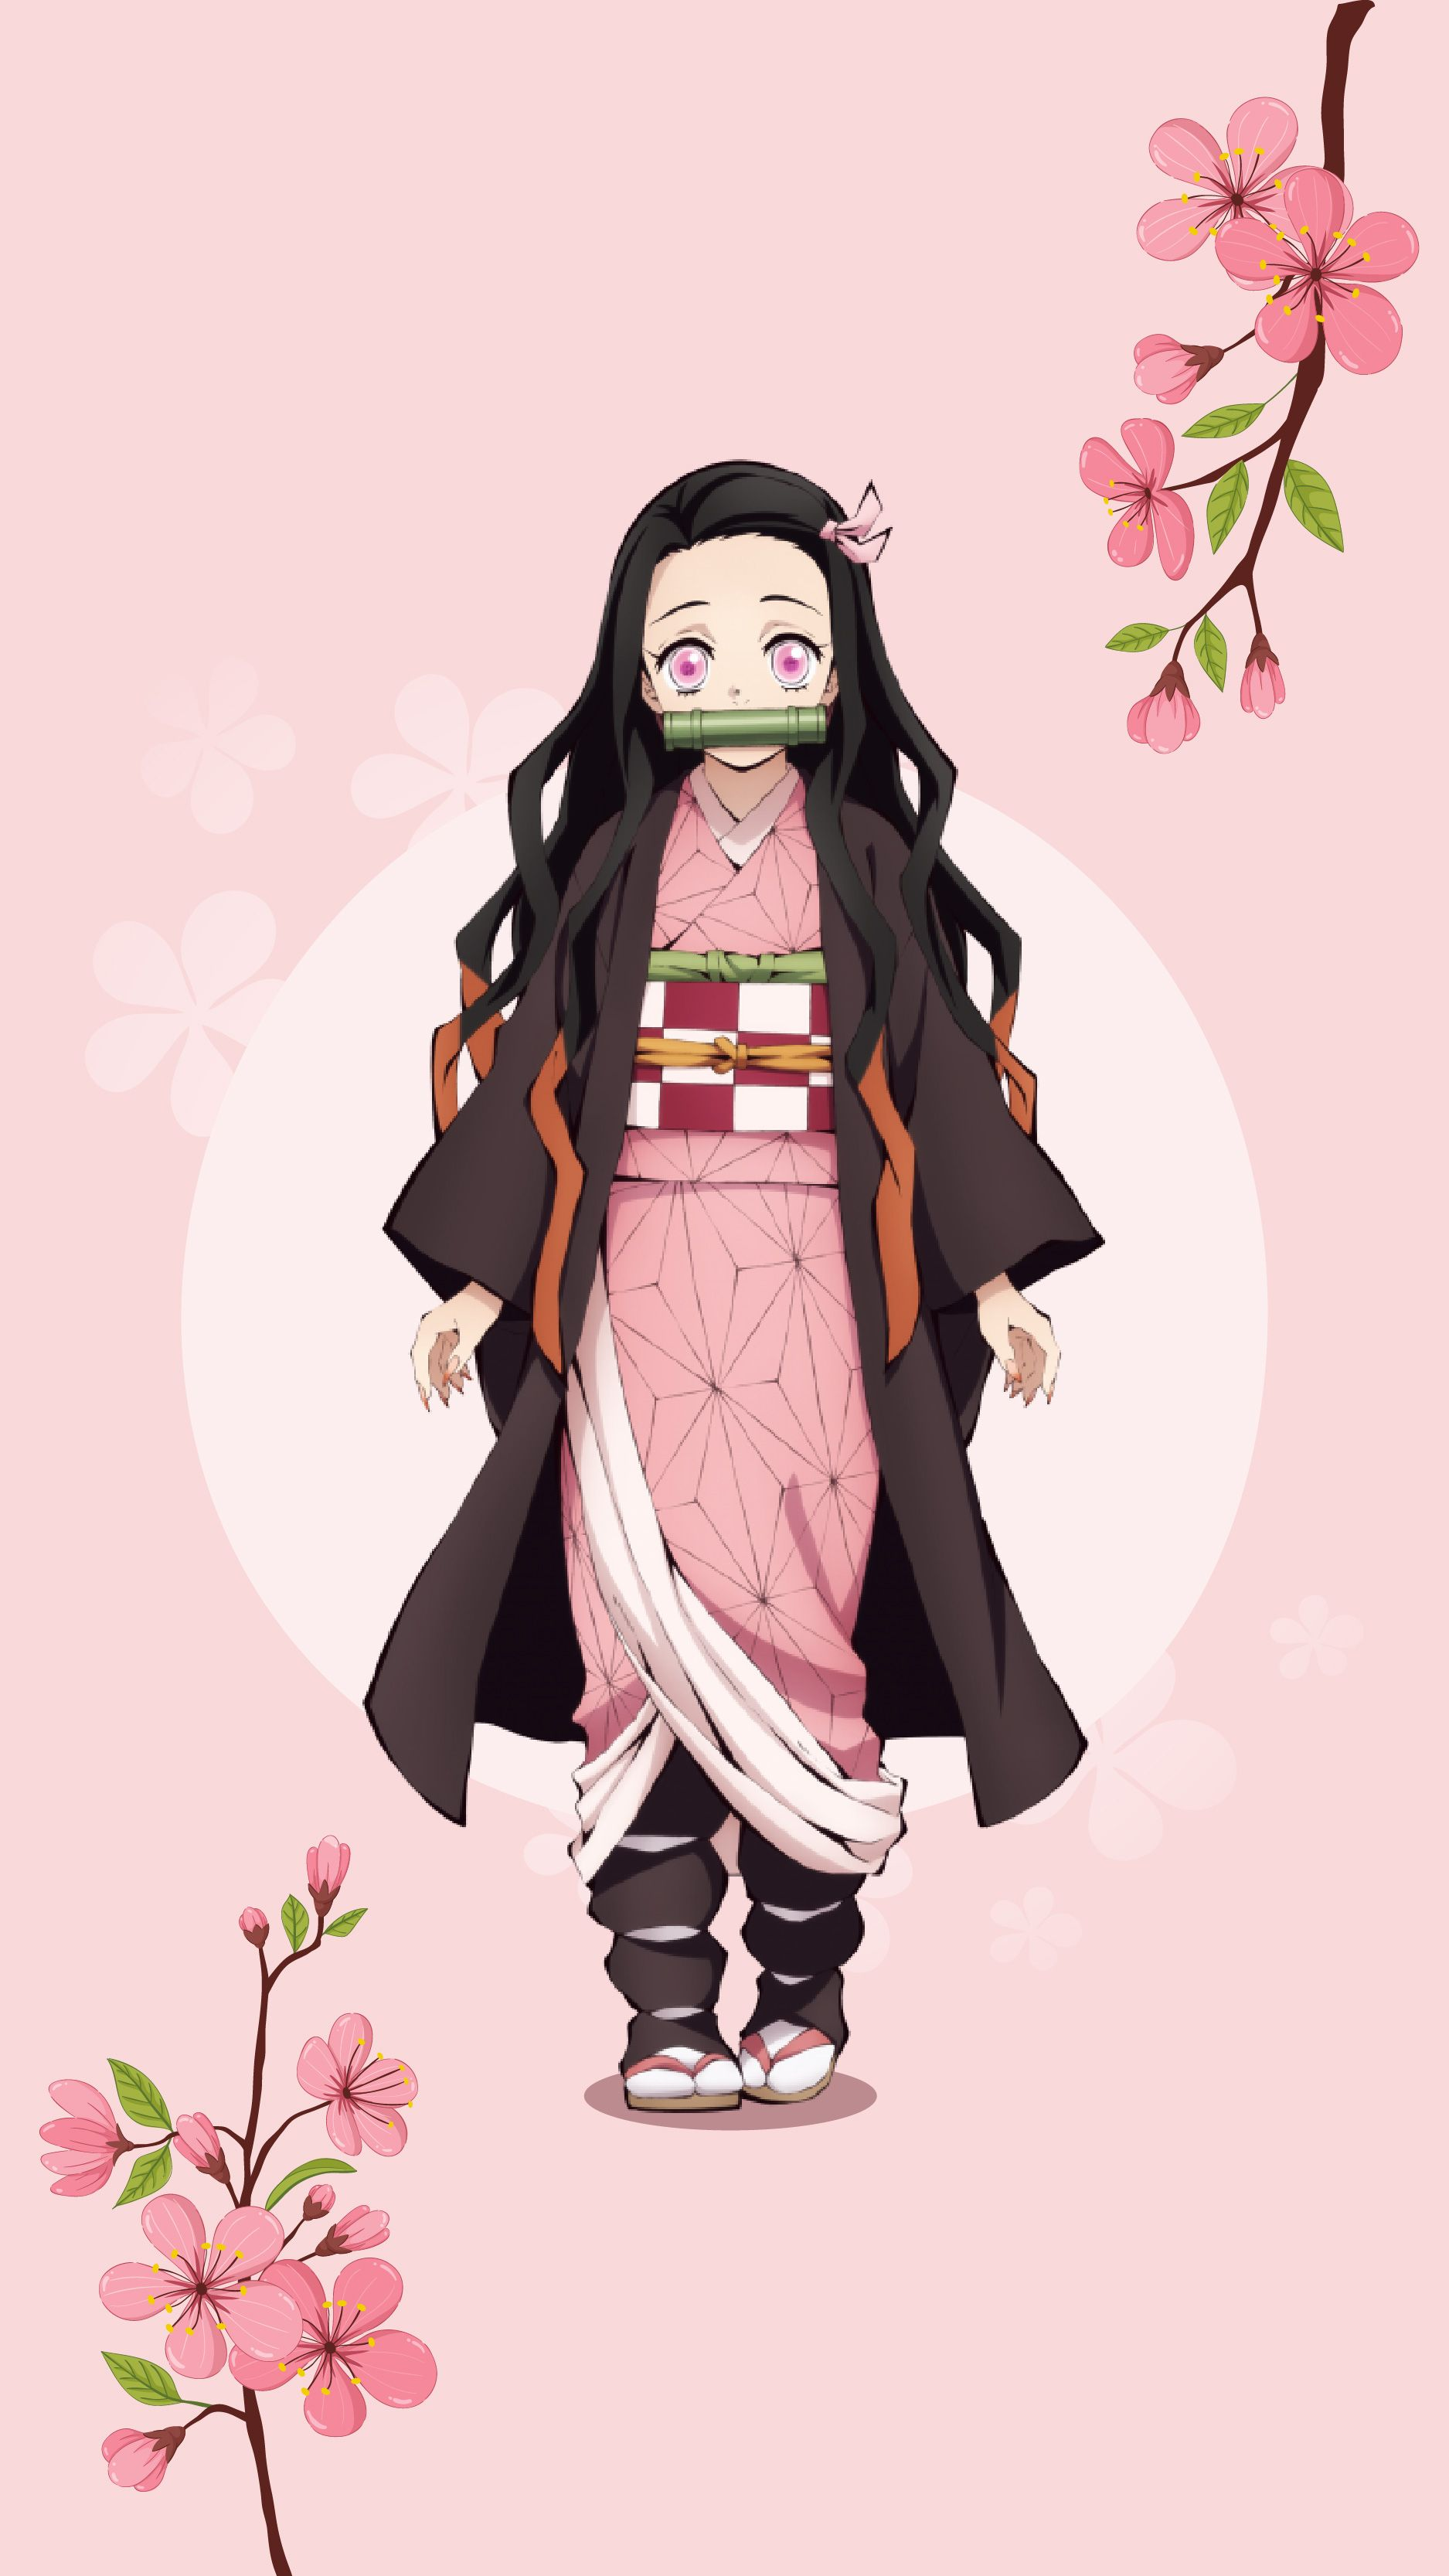 Demon Slayer Nezuko Phone Wallpaper Anime Demon Anime Wallpaper Cute Anime Character